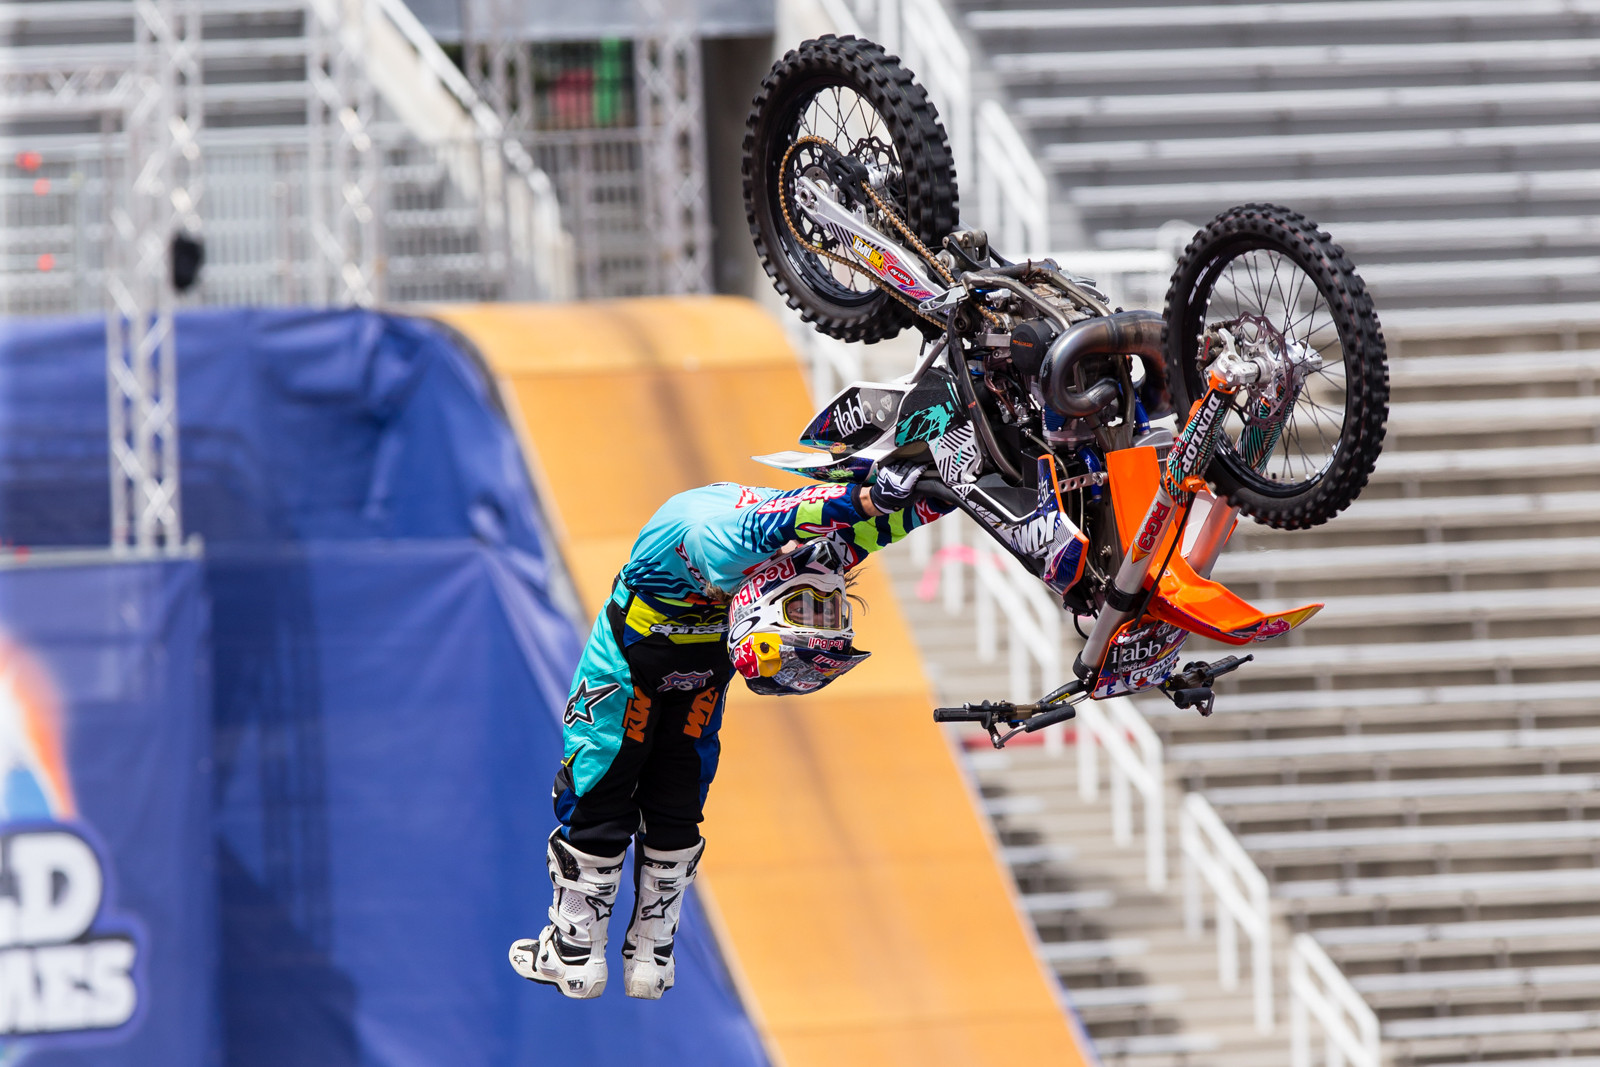 2016 Nitro World Games: FMX Qualifying Gallery - Levi Sherwood - 2016 Nitro World Games: FMX Qualifying Gallery - Motocross Pictures - Vital MX